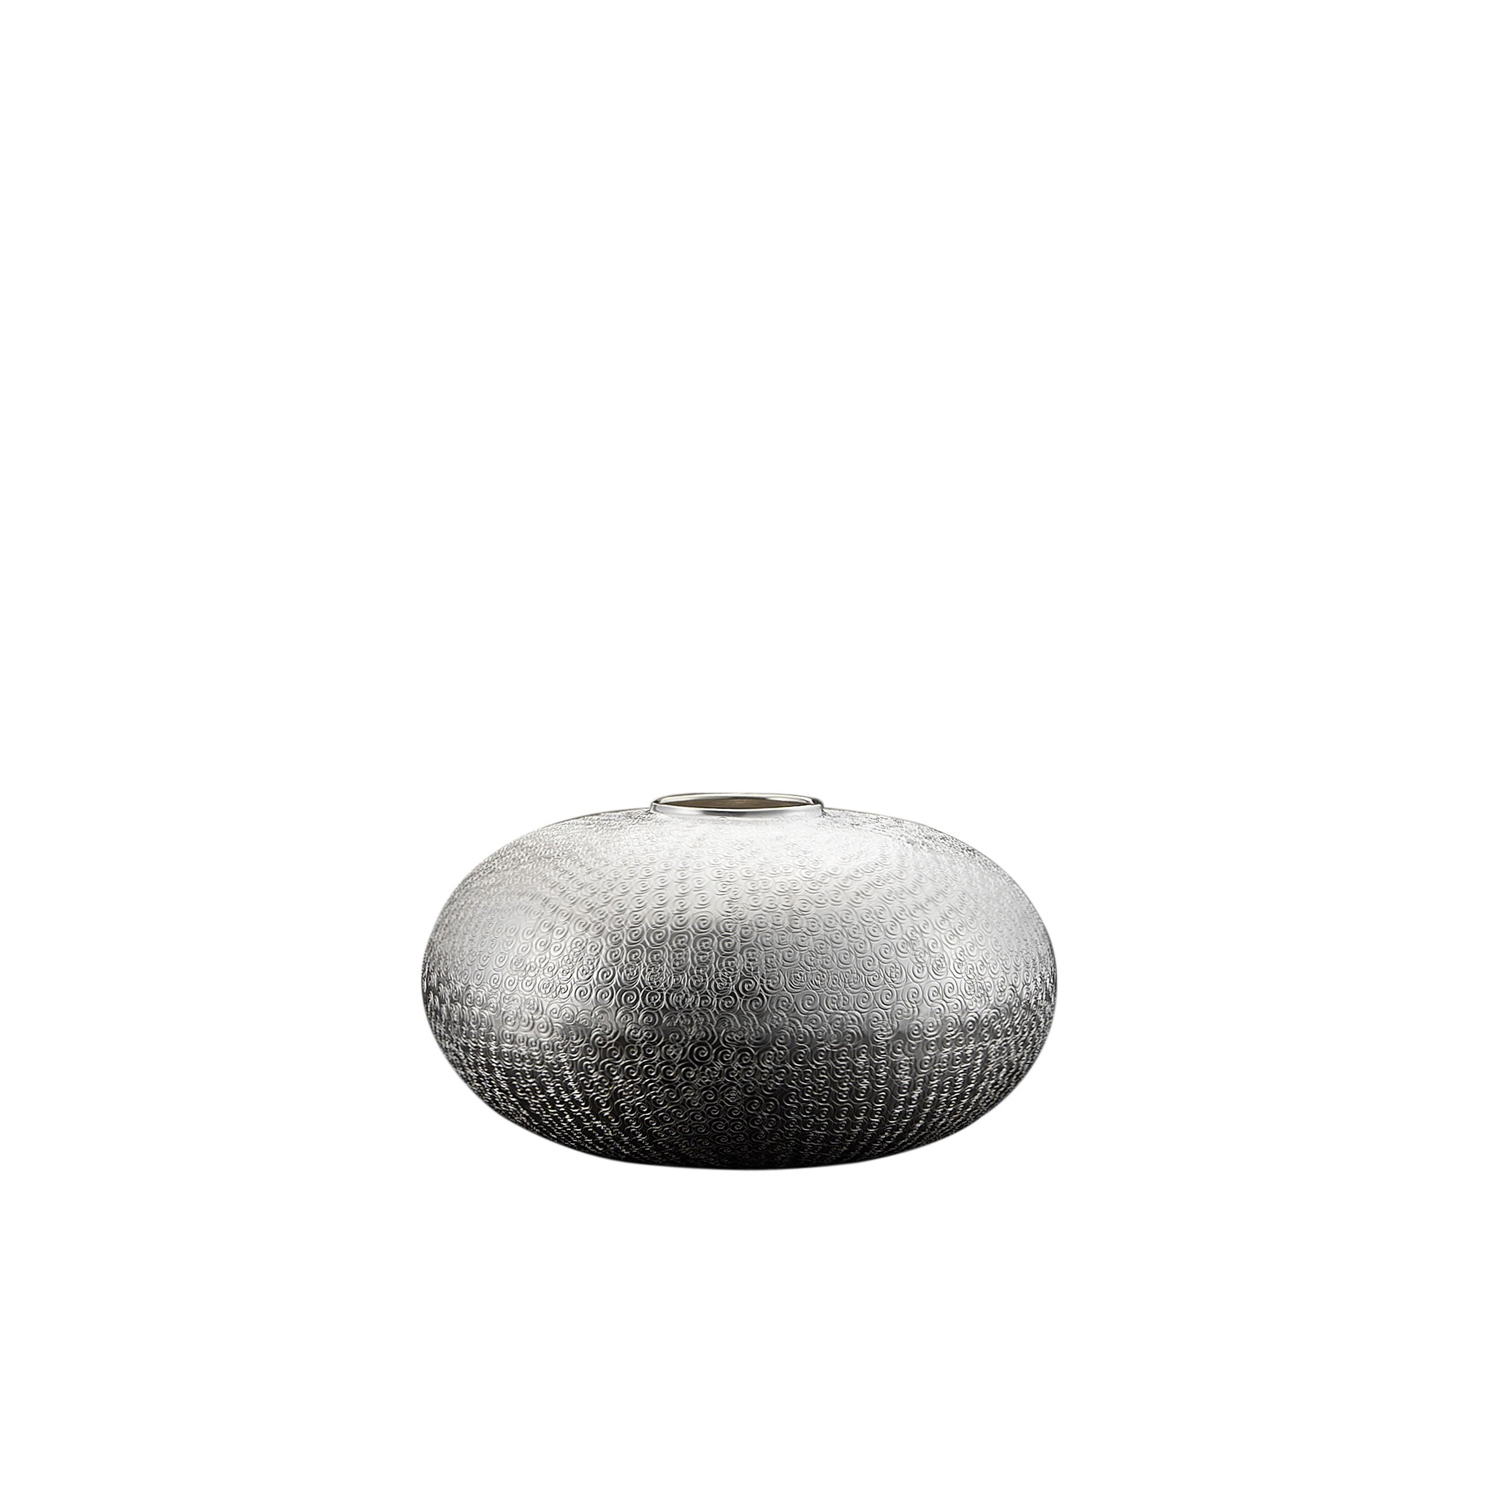 Agadir Vase - This handcrafted silver plated vase takes its inspiration from the heart of Africa. It features a rounded bowl-like silhouette and a narrow lip.